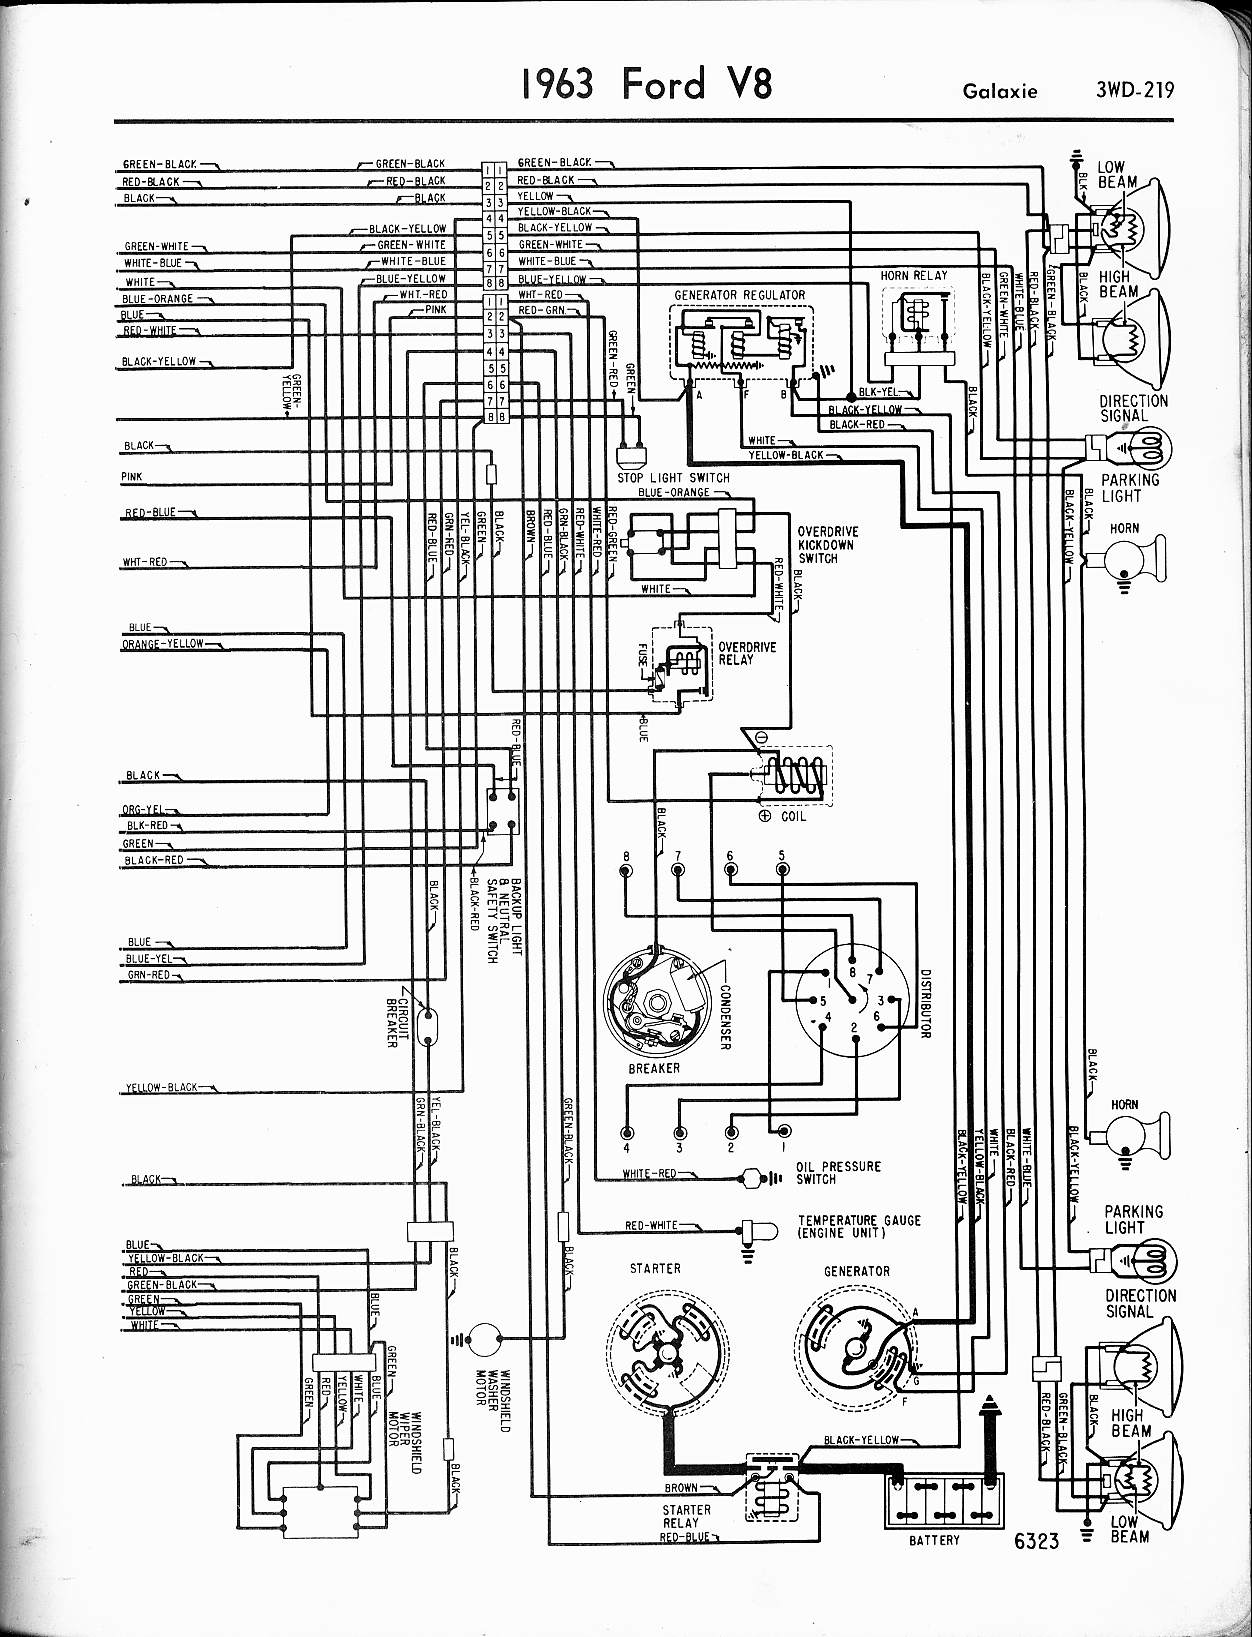 477797 Circuit Breaker on 1965 corvette dash wiring diagram